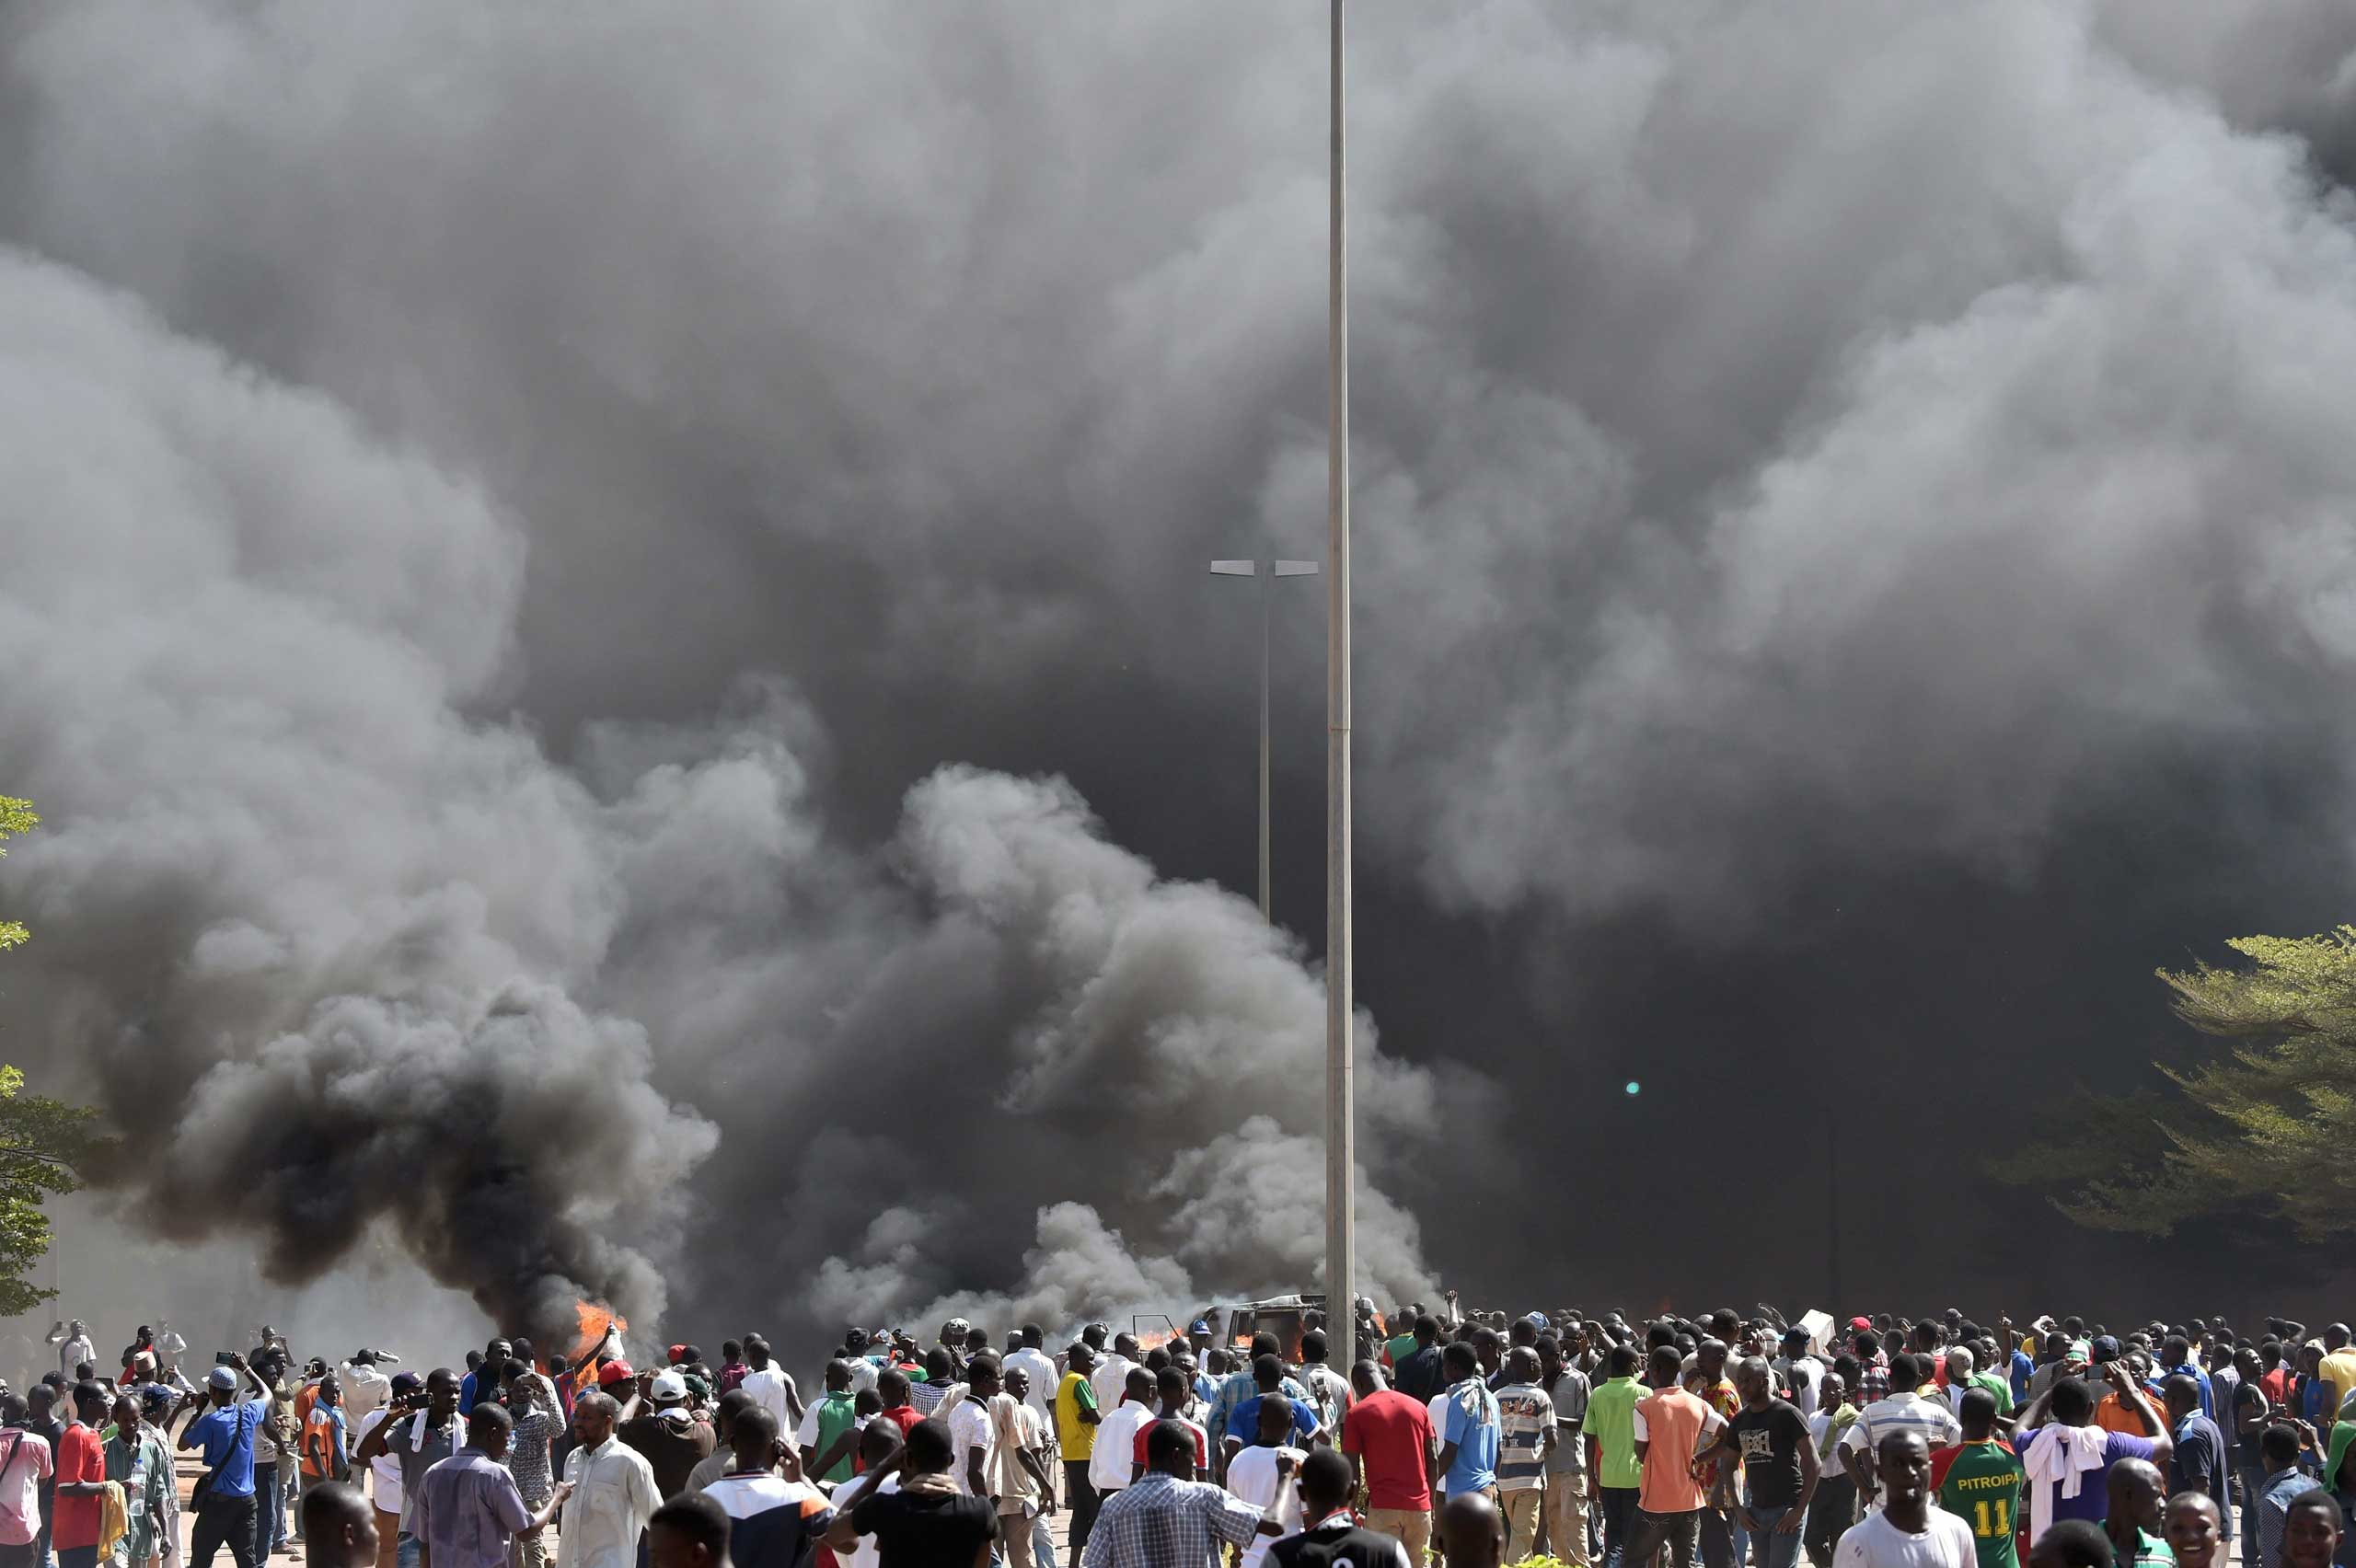 People stand in front of smoke rising from the Burkina Faso's Parliament, where demonstrators put fire on cars parked in a courtyard of the Parliament, on Oct. 30, 2014 in Ouagadougou.